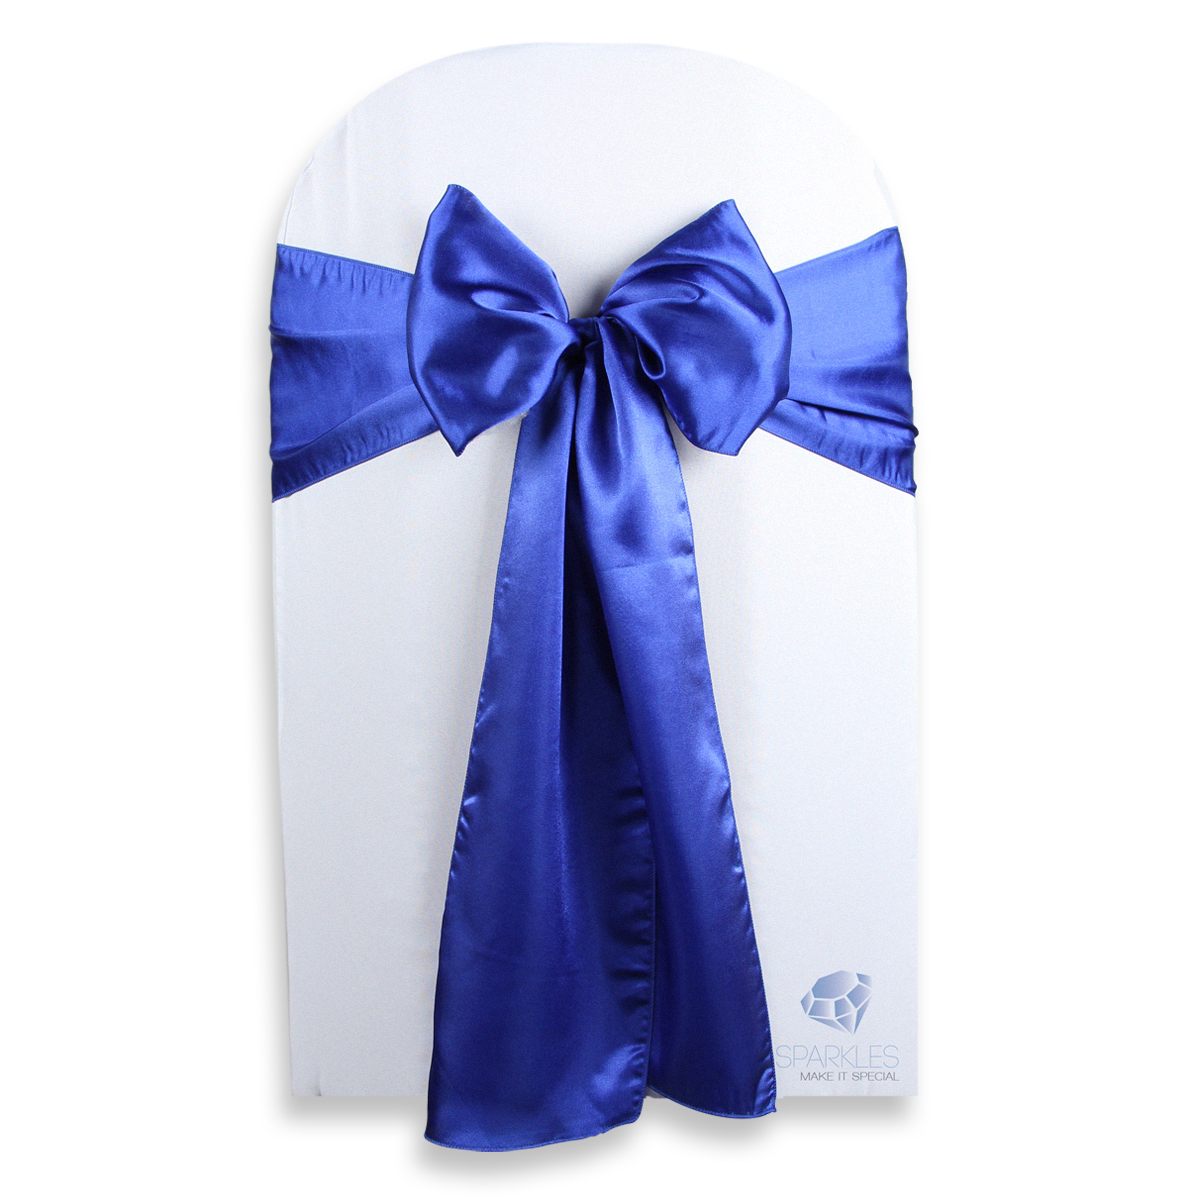 royal blue chair sashes lightweight transport chairs 10 pcs satin cover bow sash 108 quotx8 quot